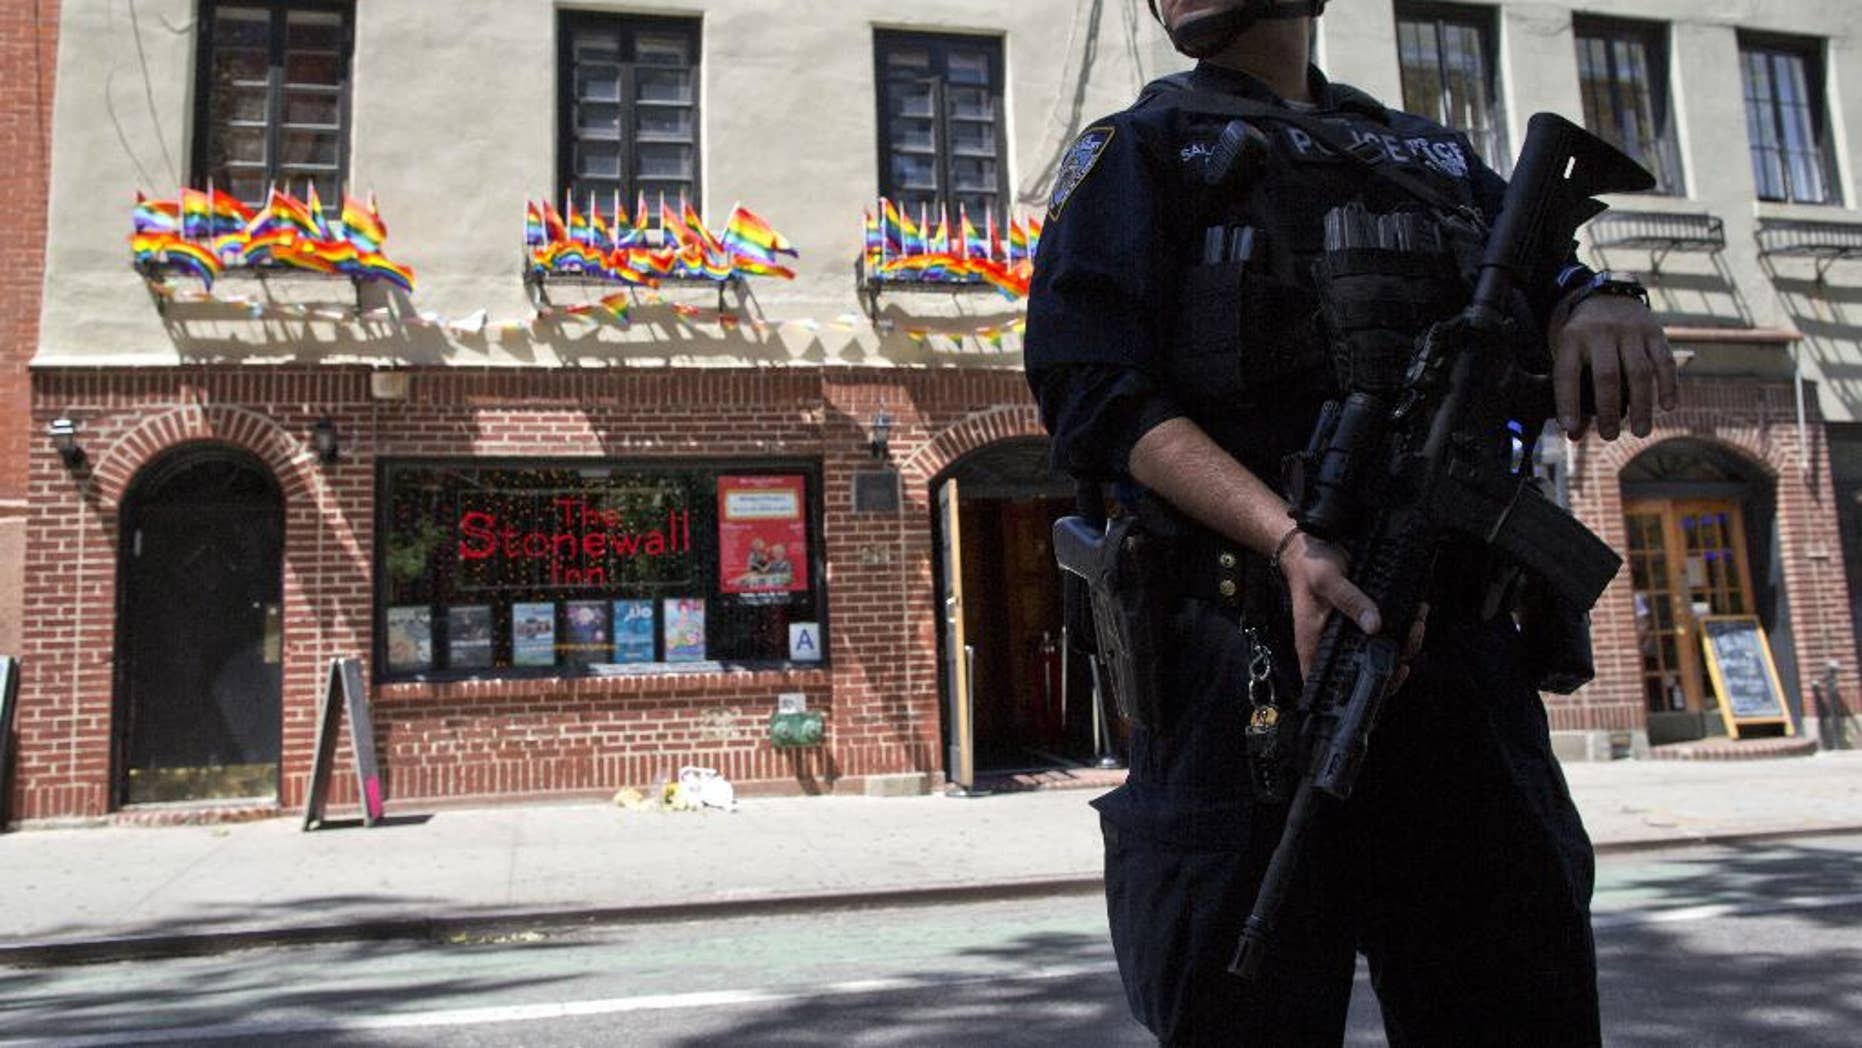 FILE - In a June 12, 2016 file photo, an armed police officer stands guard outside the Stonewall Inn, in New York. Sunday's mass shooting the Pulse nightclub, in which gunman Omar Mateen killed dozens of people before dying in a gun battle, prompted an outpouring of reminiscence and reflection on that vital roles that such clubs have played for many lesbians, gays, bisexuals and transgender people across the U.S. (AP Photo/Mary Altaffer, File)